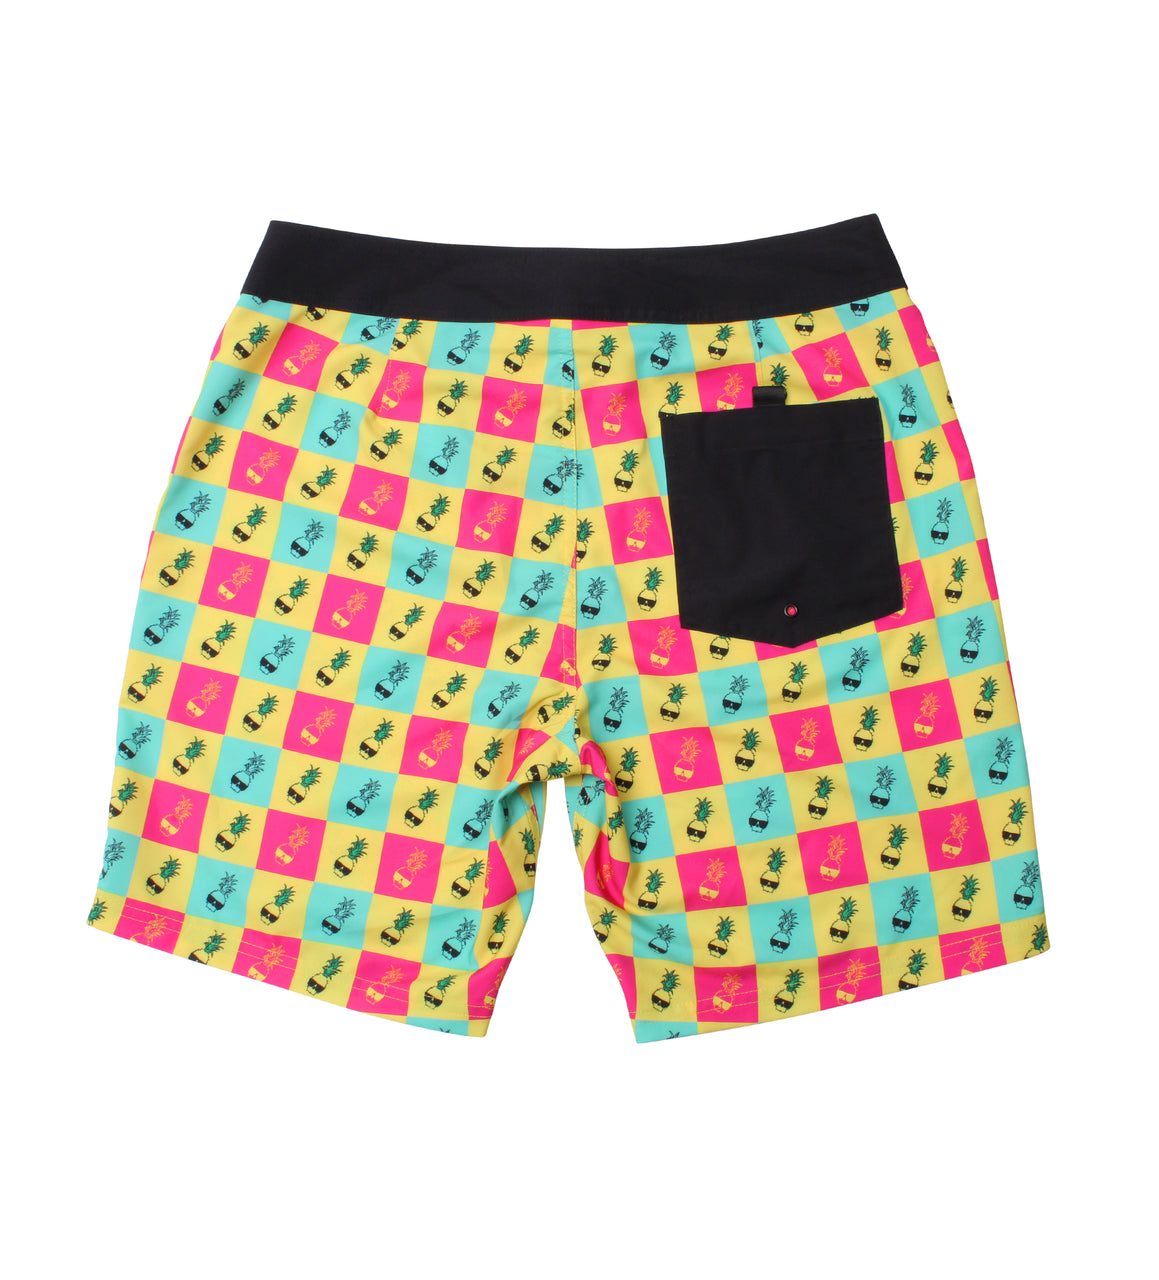 Ben Gravy Pineapple All Day Trunk - Multi Print